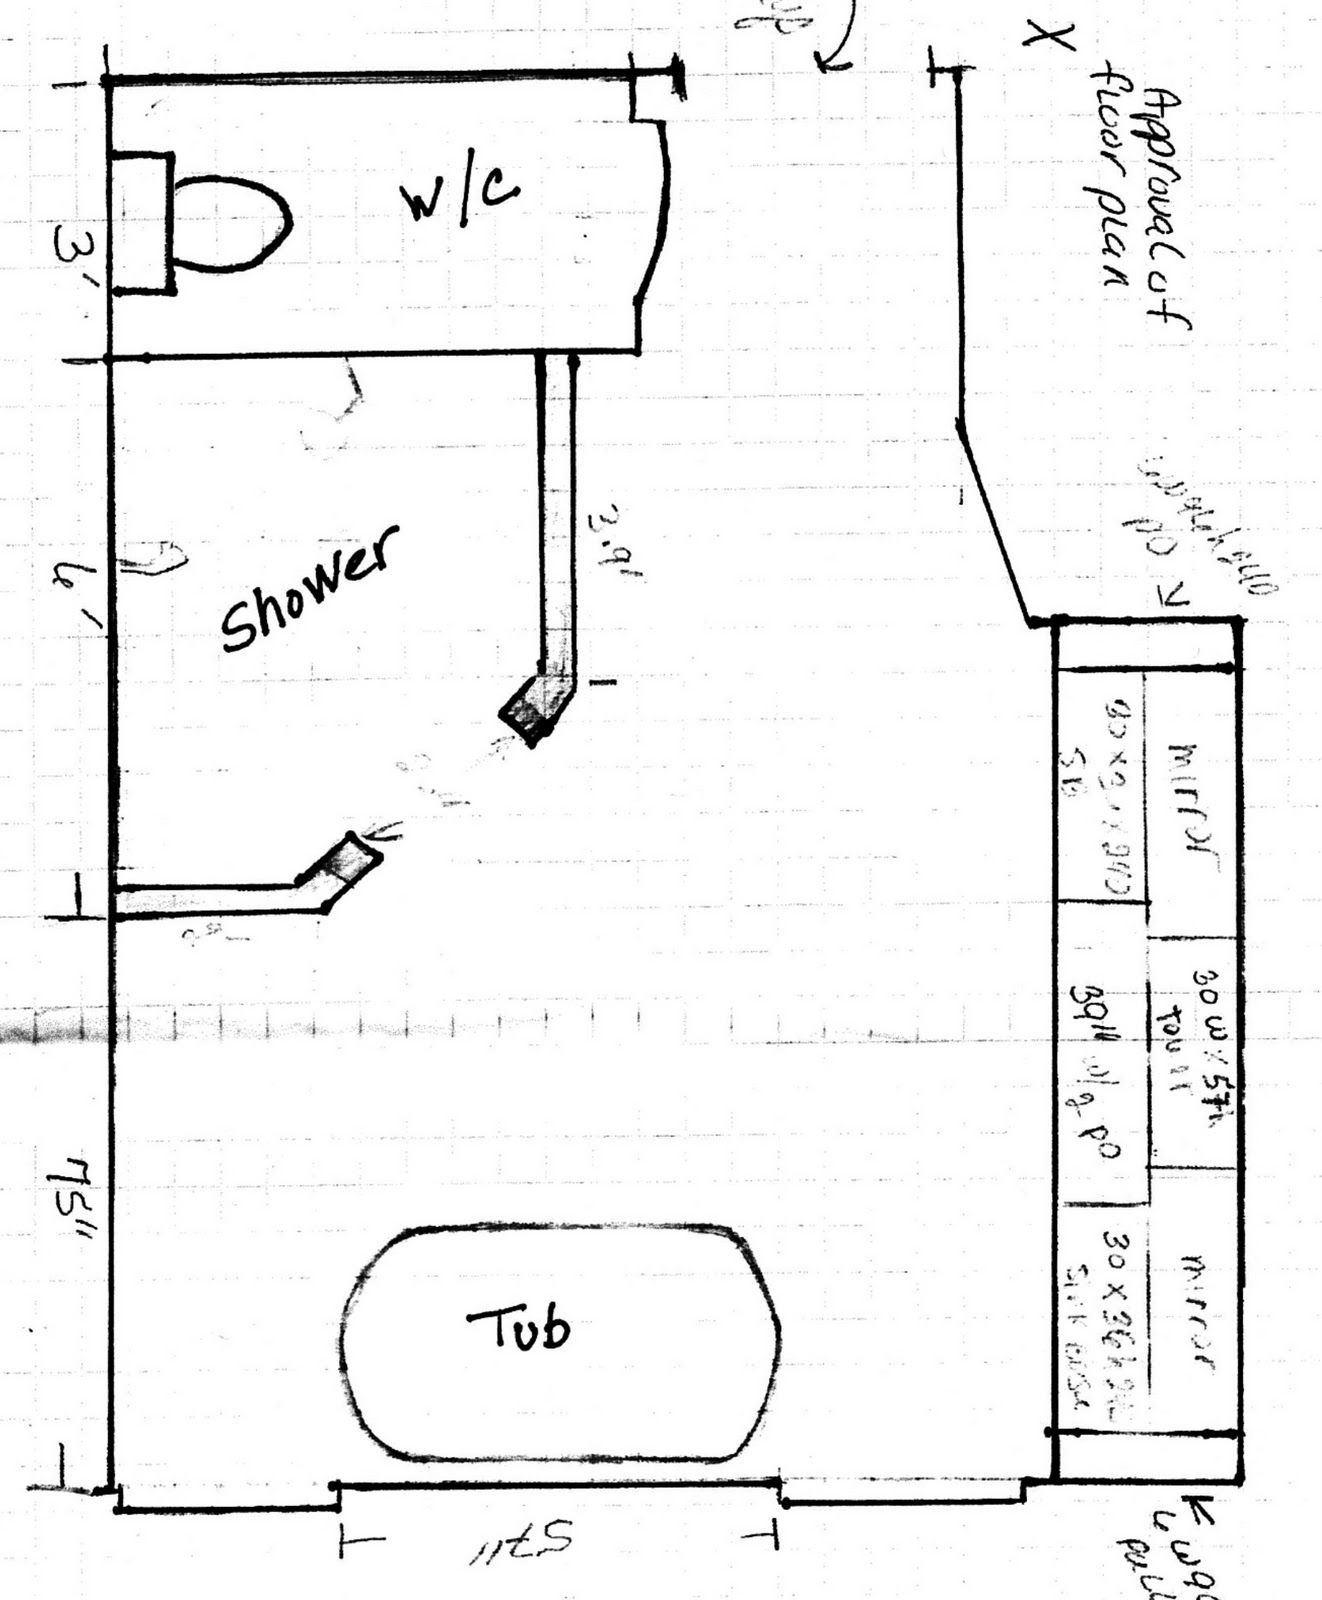 Shower Stall Diagram Ge Dryer Wire Bathroom Great Ideas Layout Doorless Design